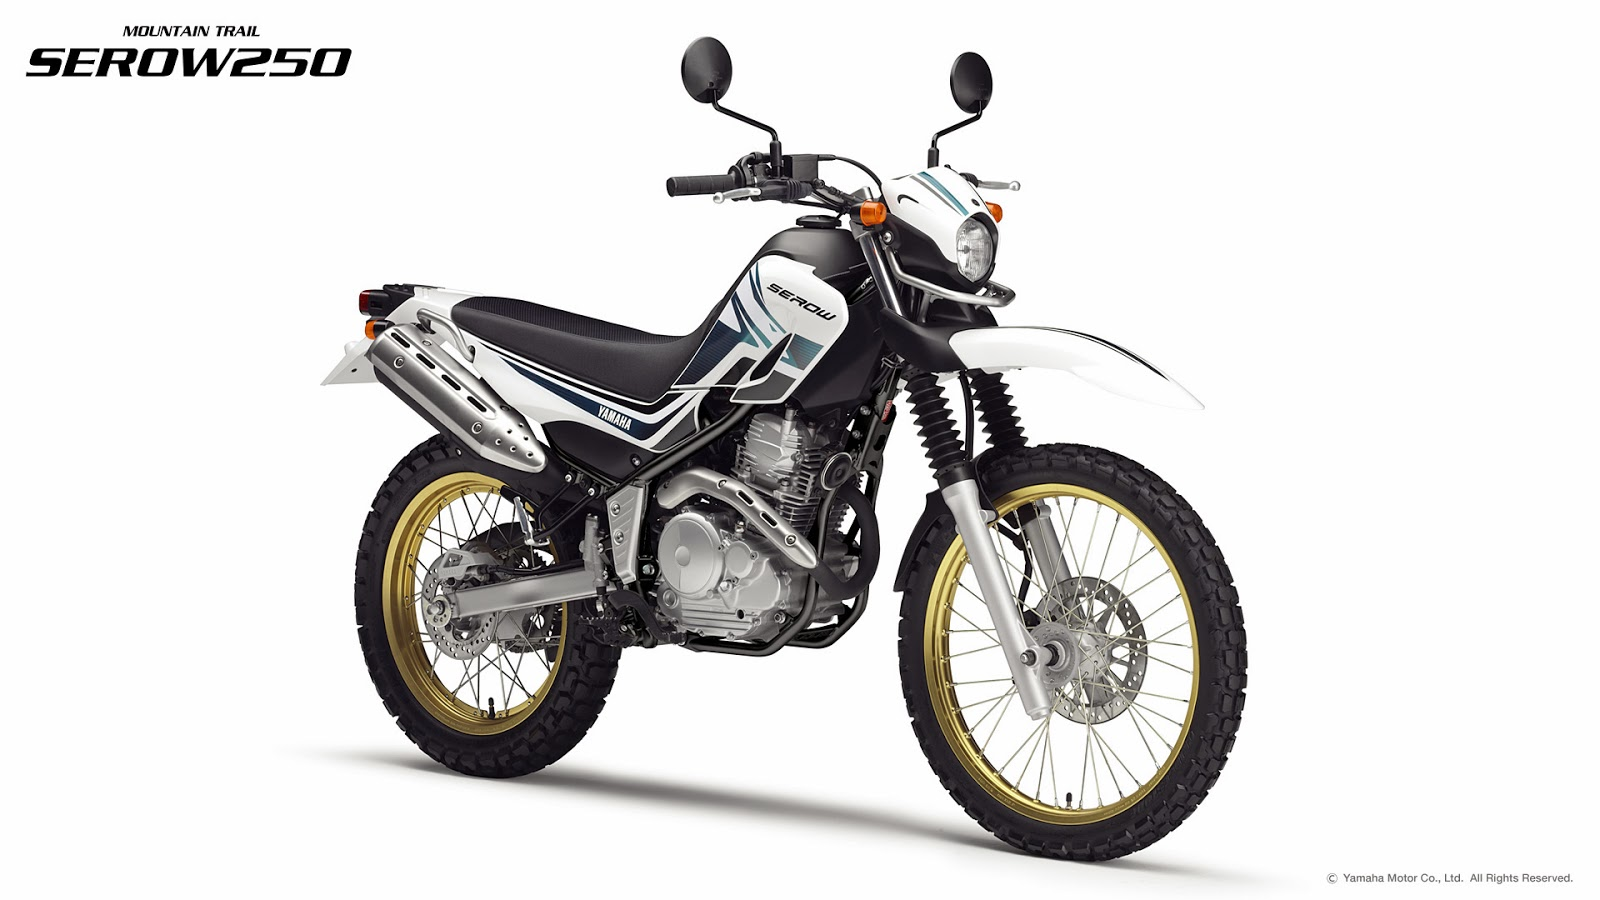 Planet Japan Blog: Yamaha Serow 250 2014